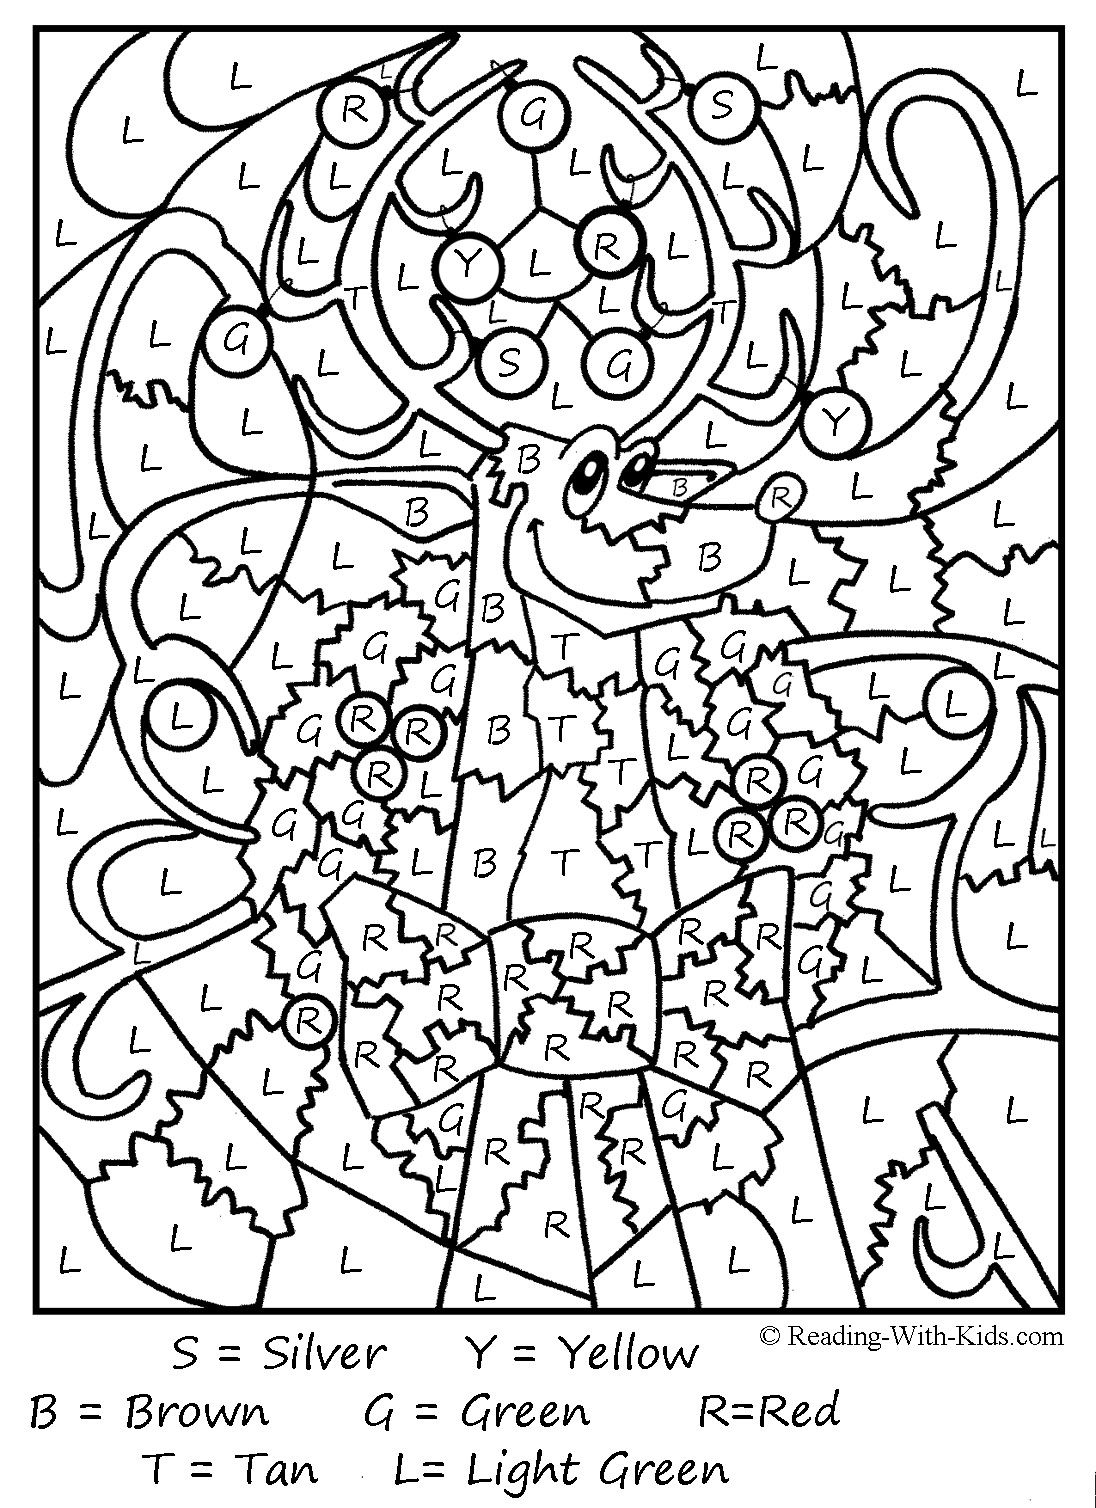 Christmas Coloring Activity Sheets With Hundreds Of Free Printable Xmas Pages And